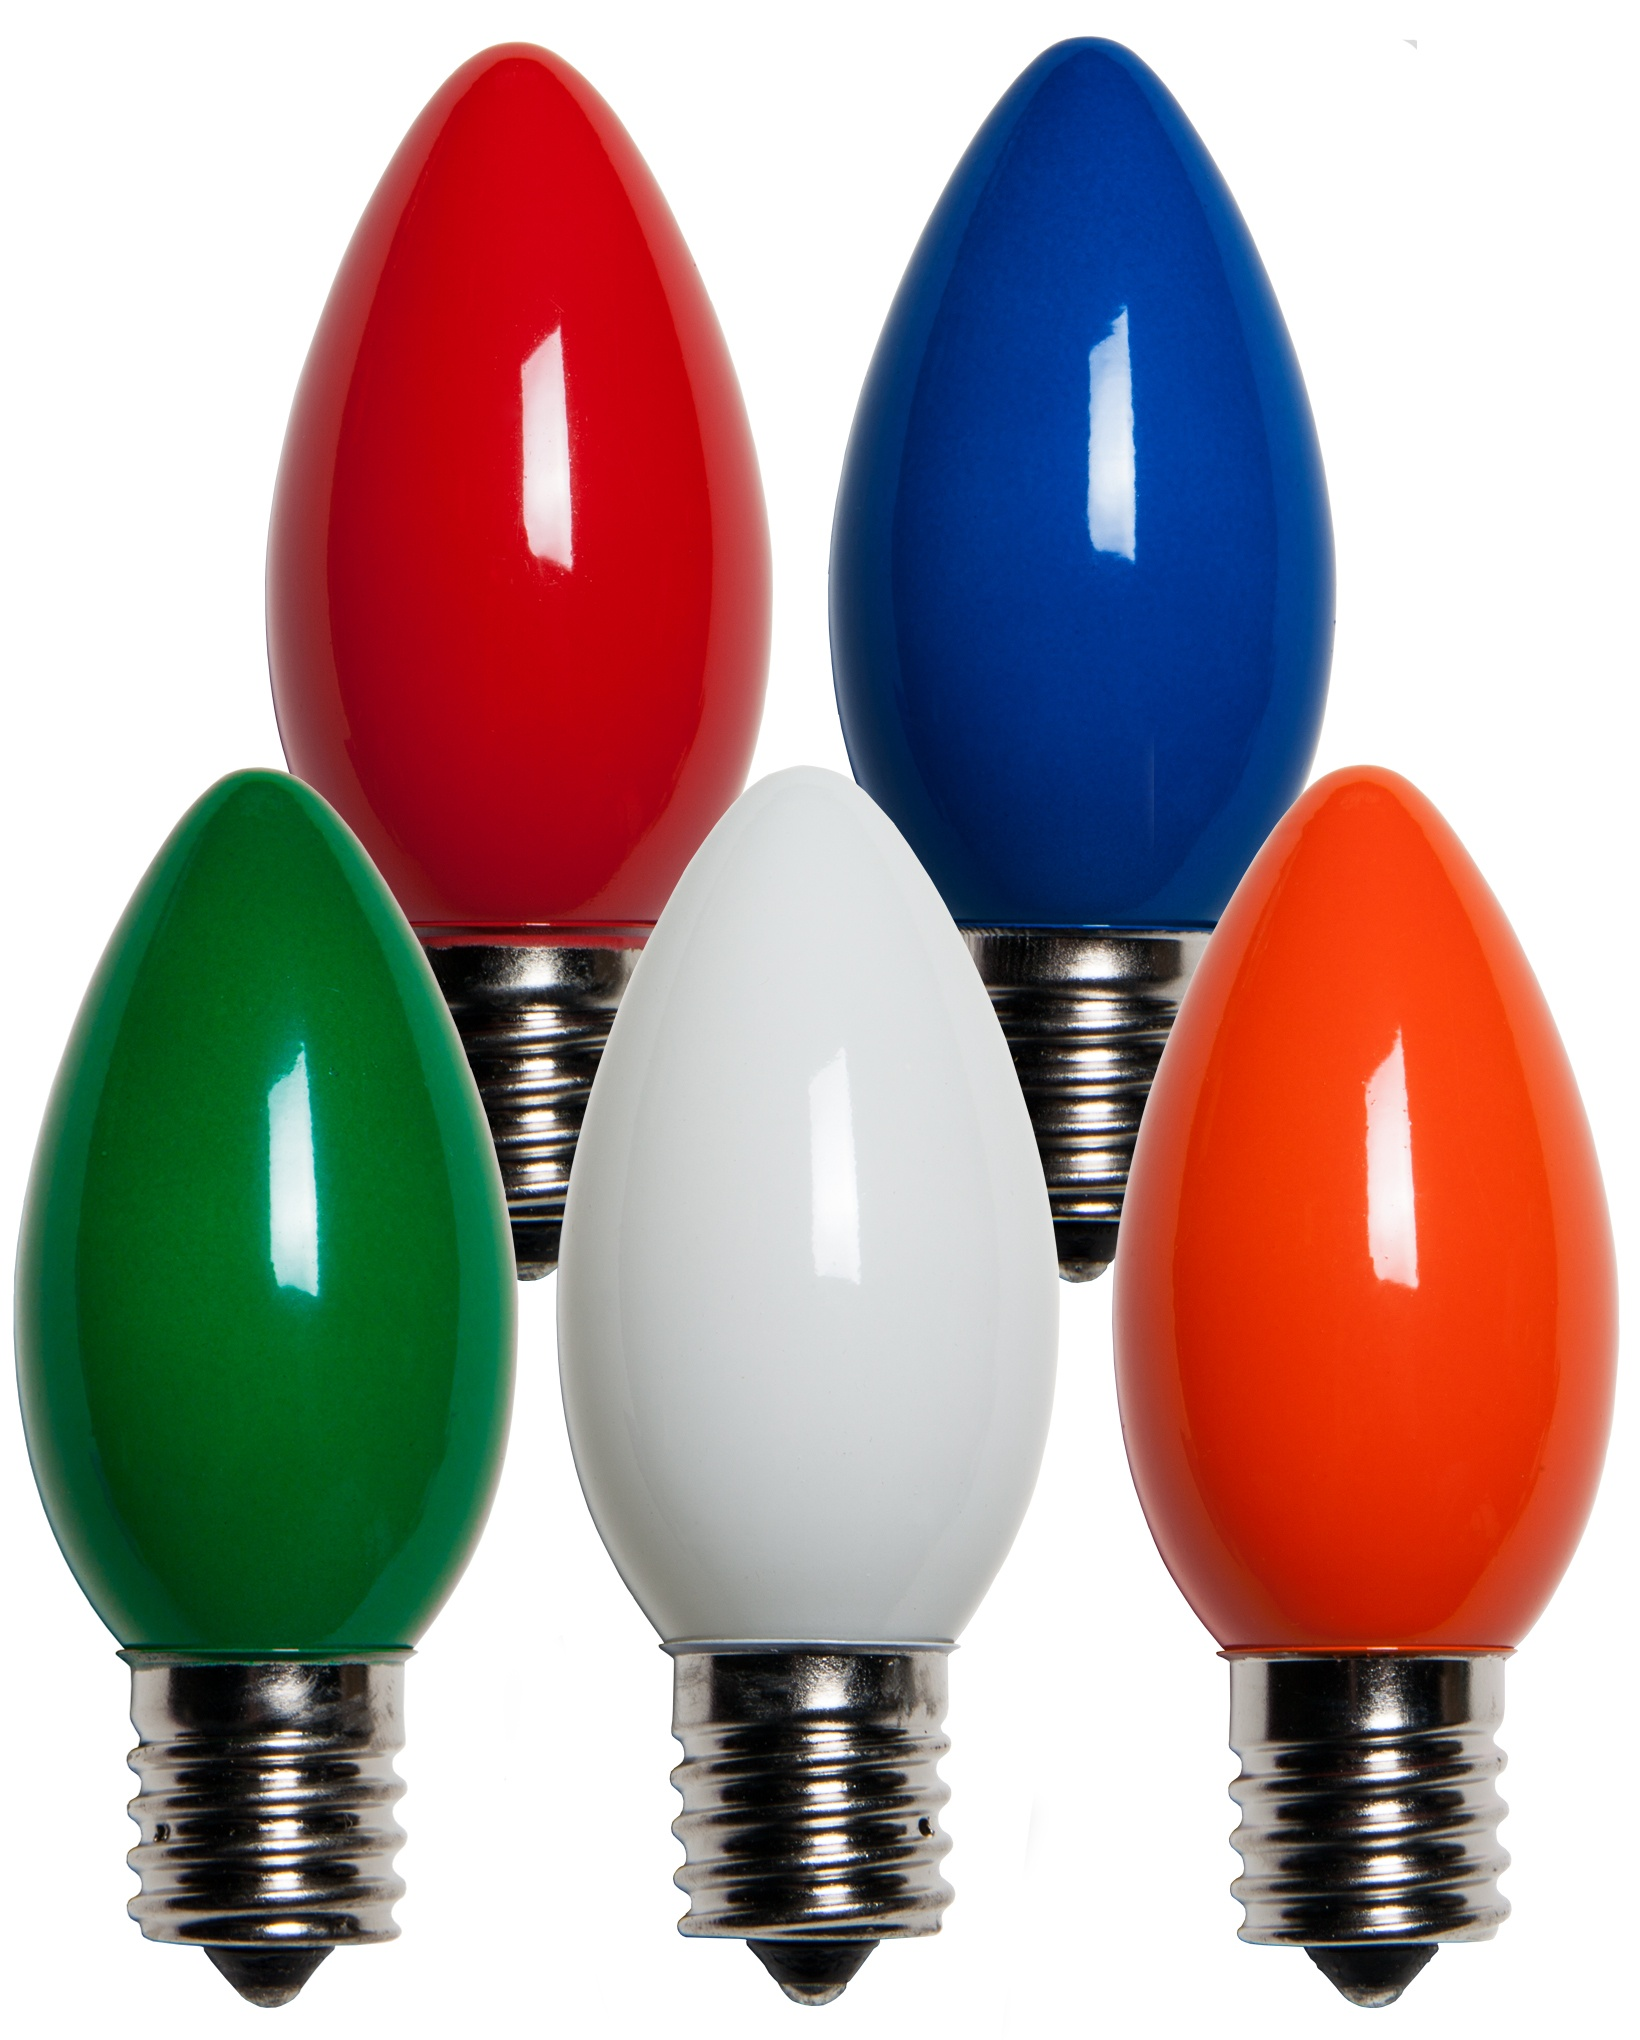 C9 Christmas Light Bulb C9 Multicolor Christmas Light Bulbs Opaque